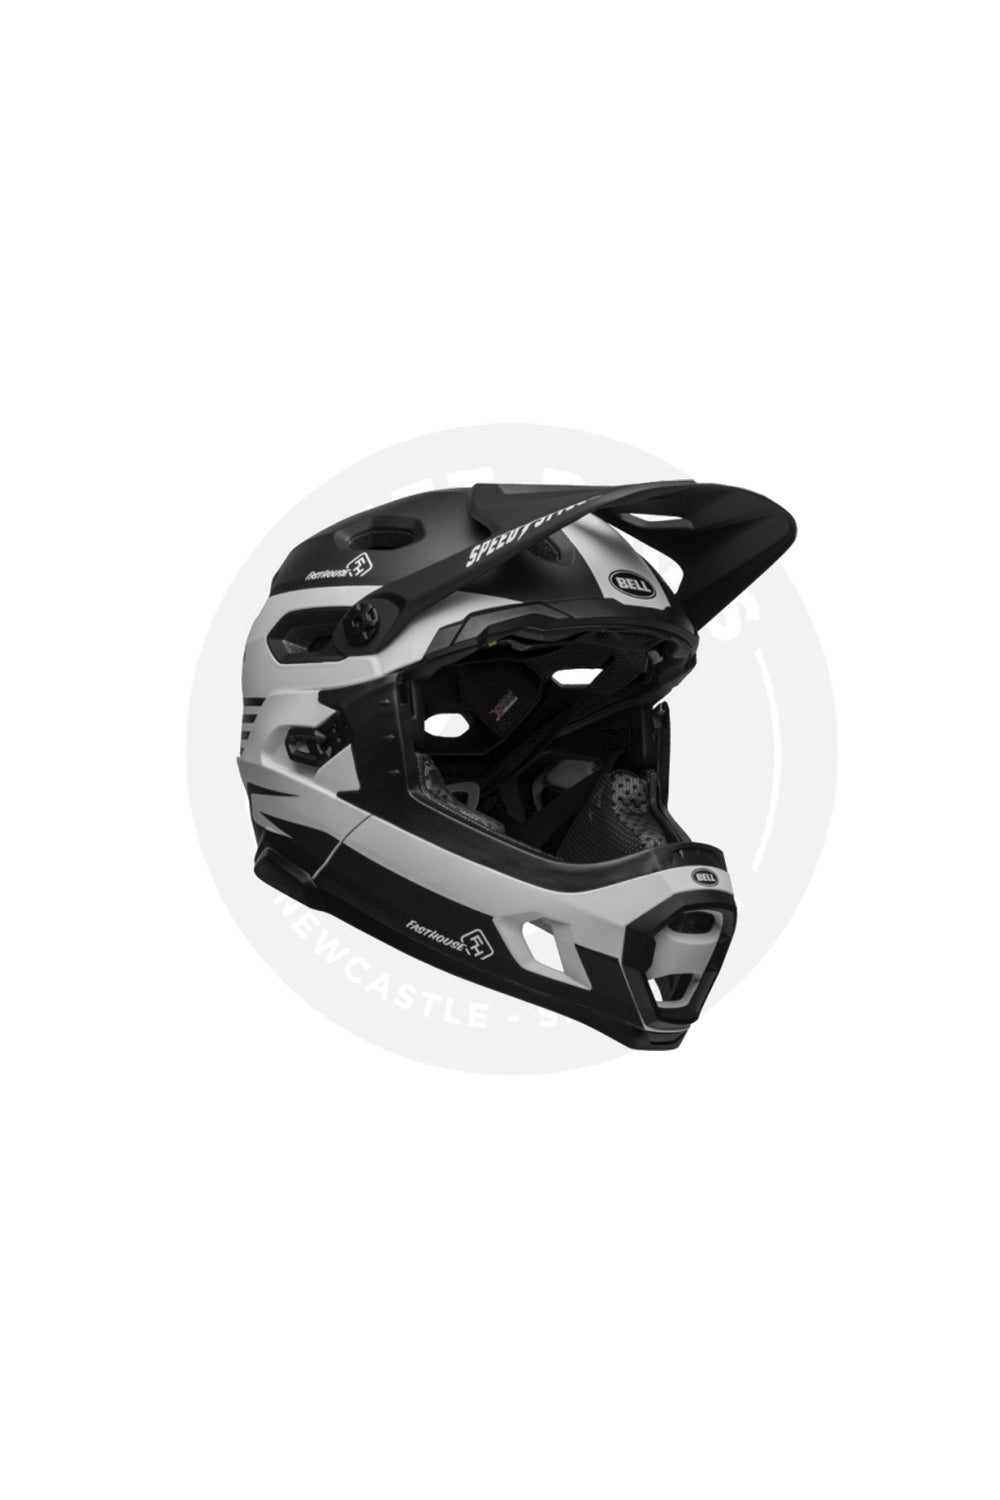 Bell Super Downhill Adult MIPS Mountain Bike Helmet